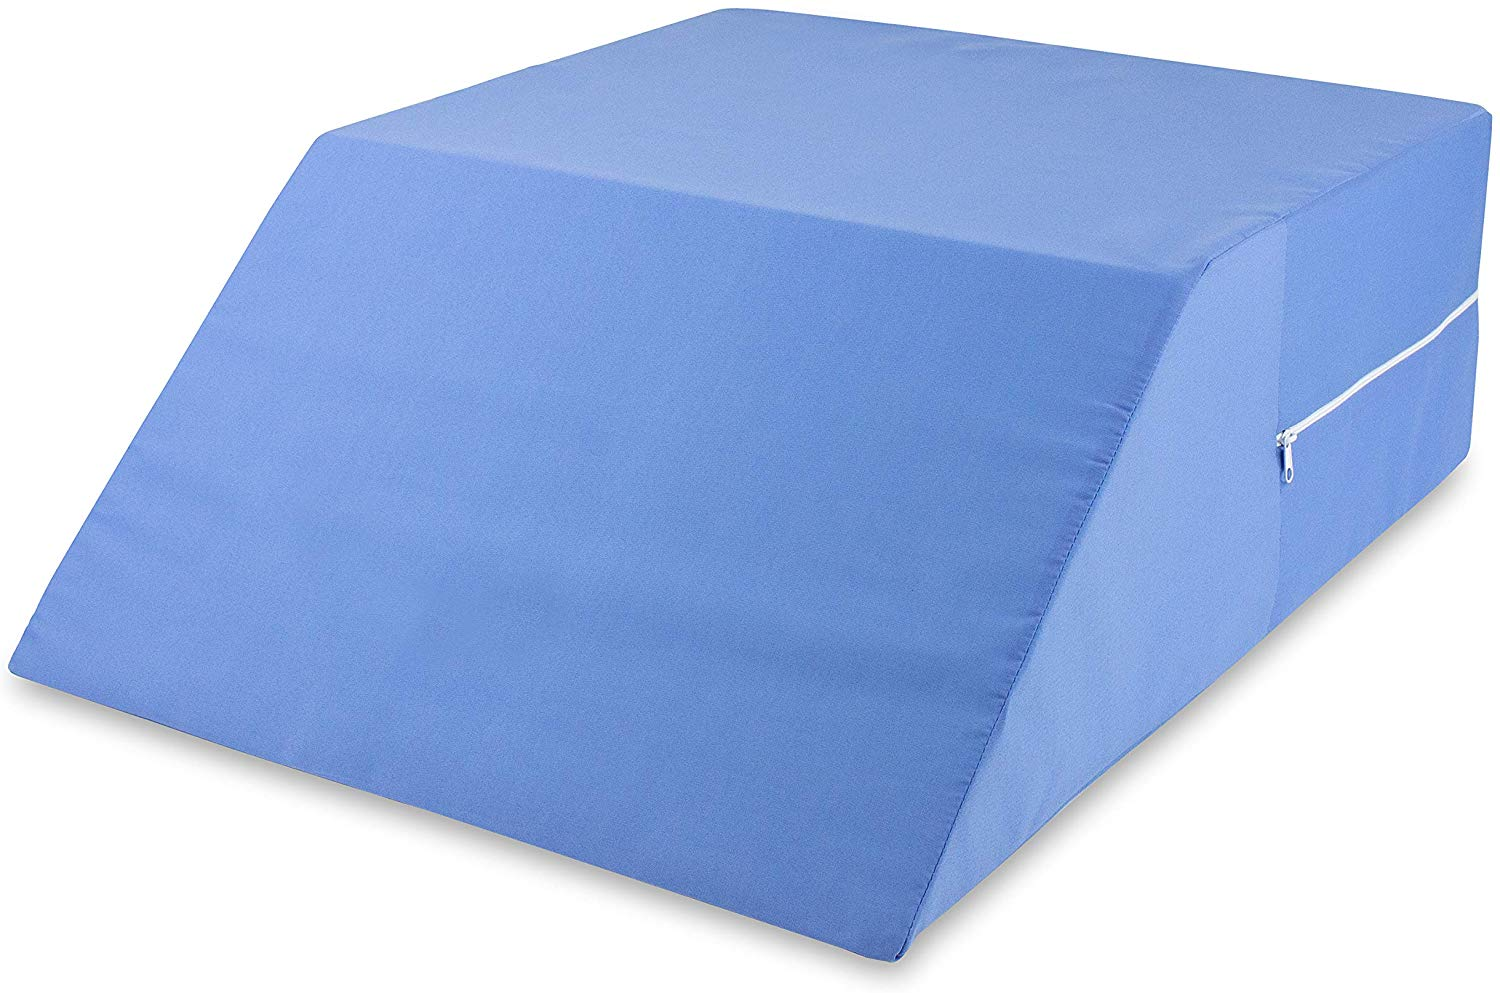 DMI Best Leg Pillow review by www.dailysleep.org